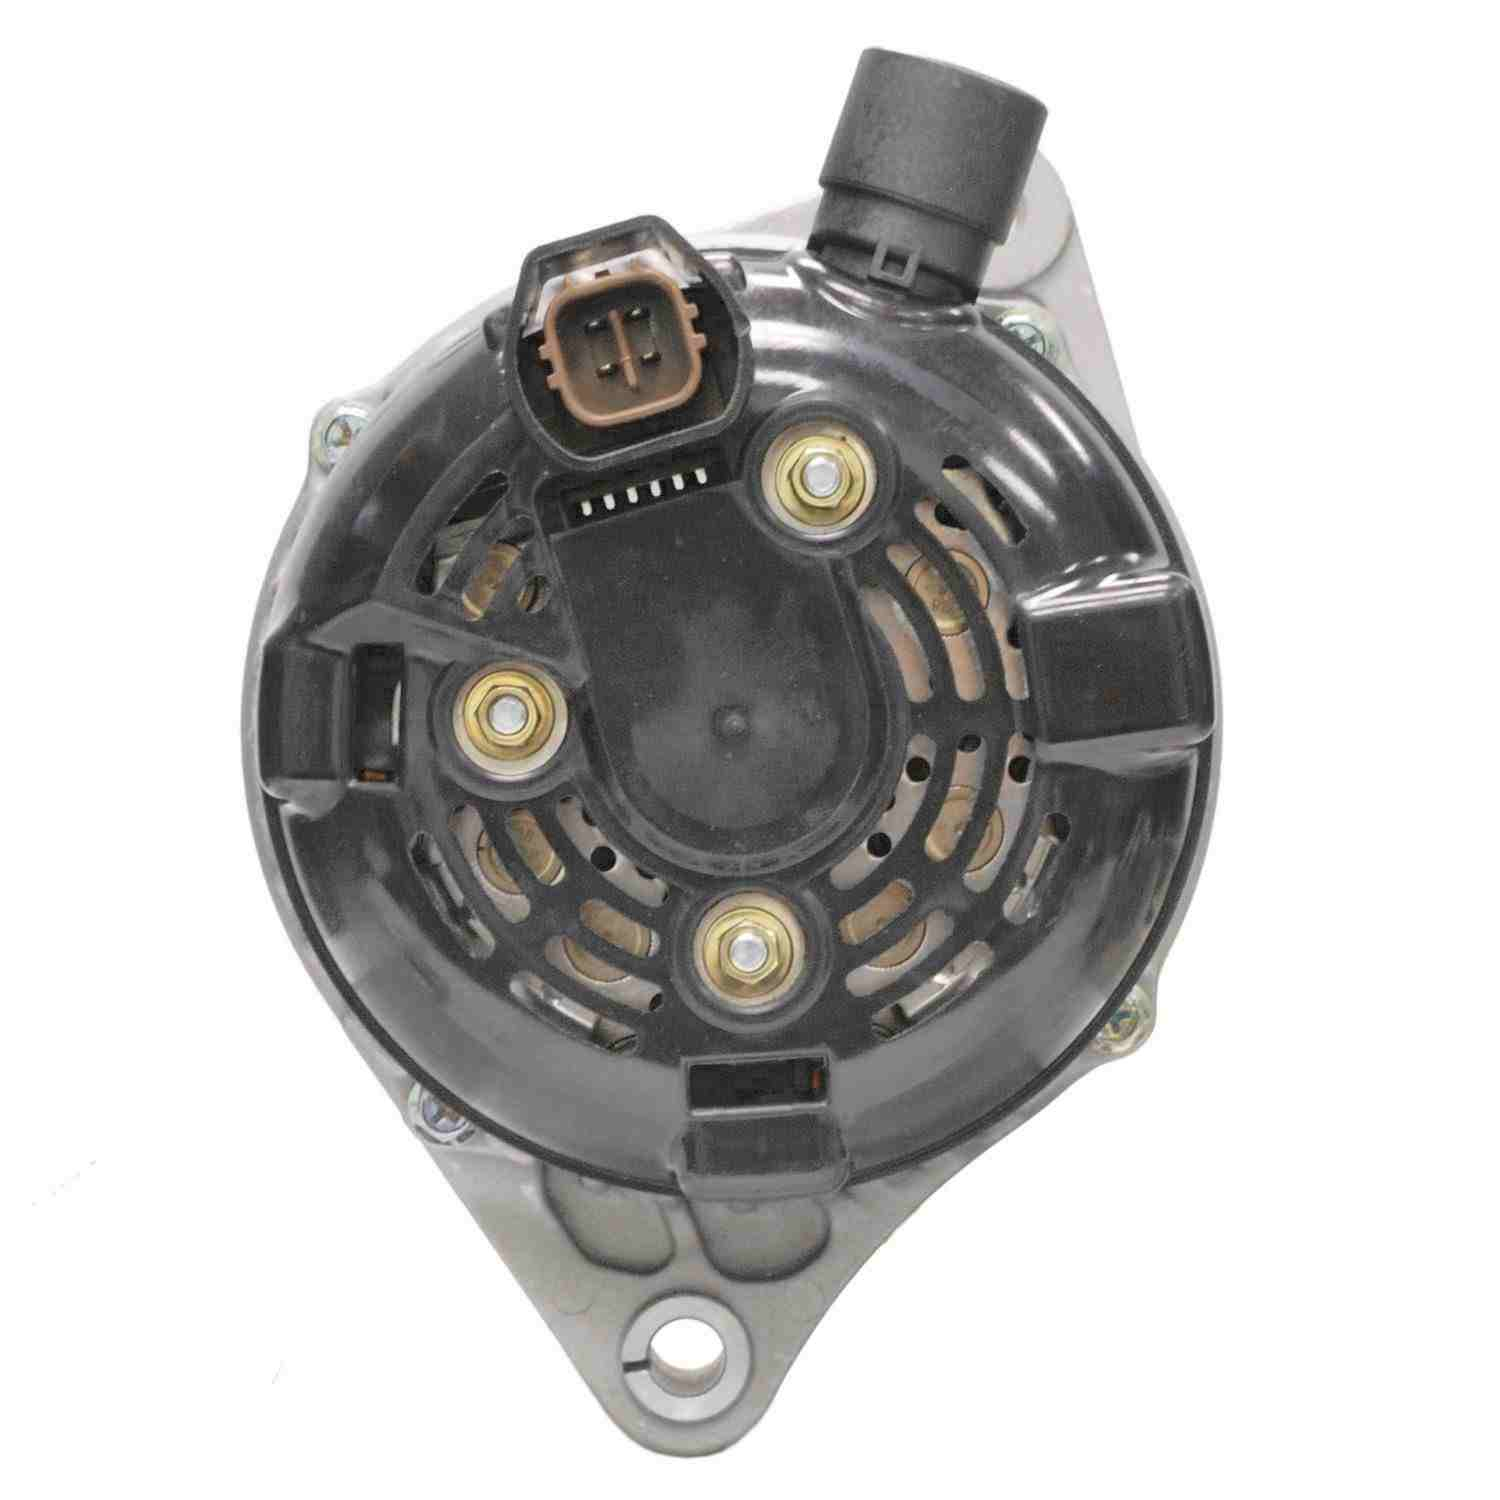 ACDELCO PROFESSIONAL - Reman Alternator - DCC 334-2692A